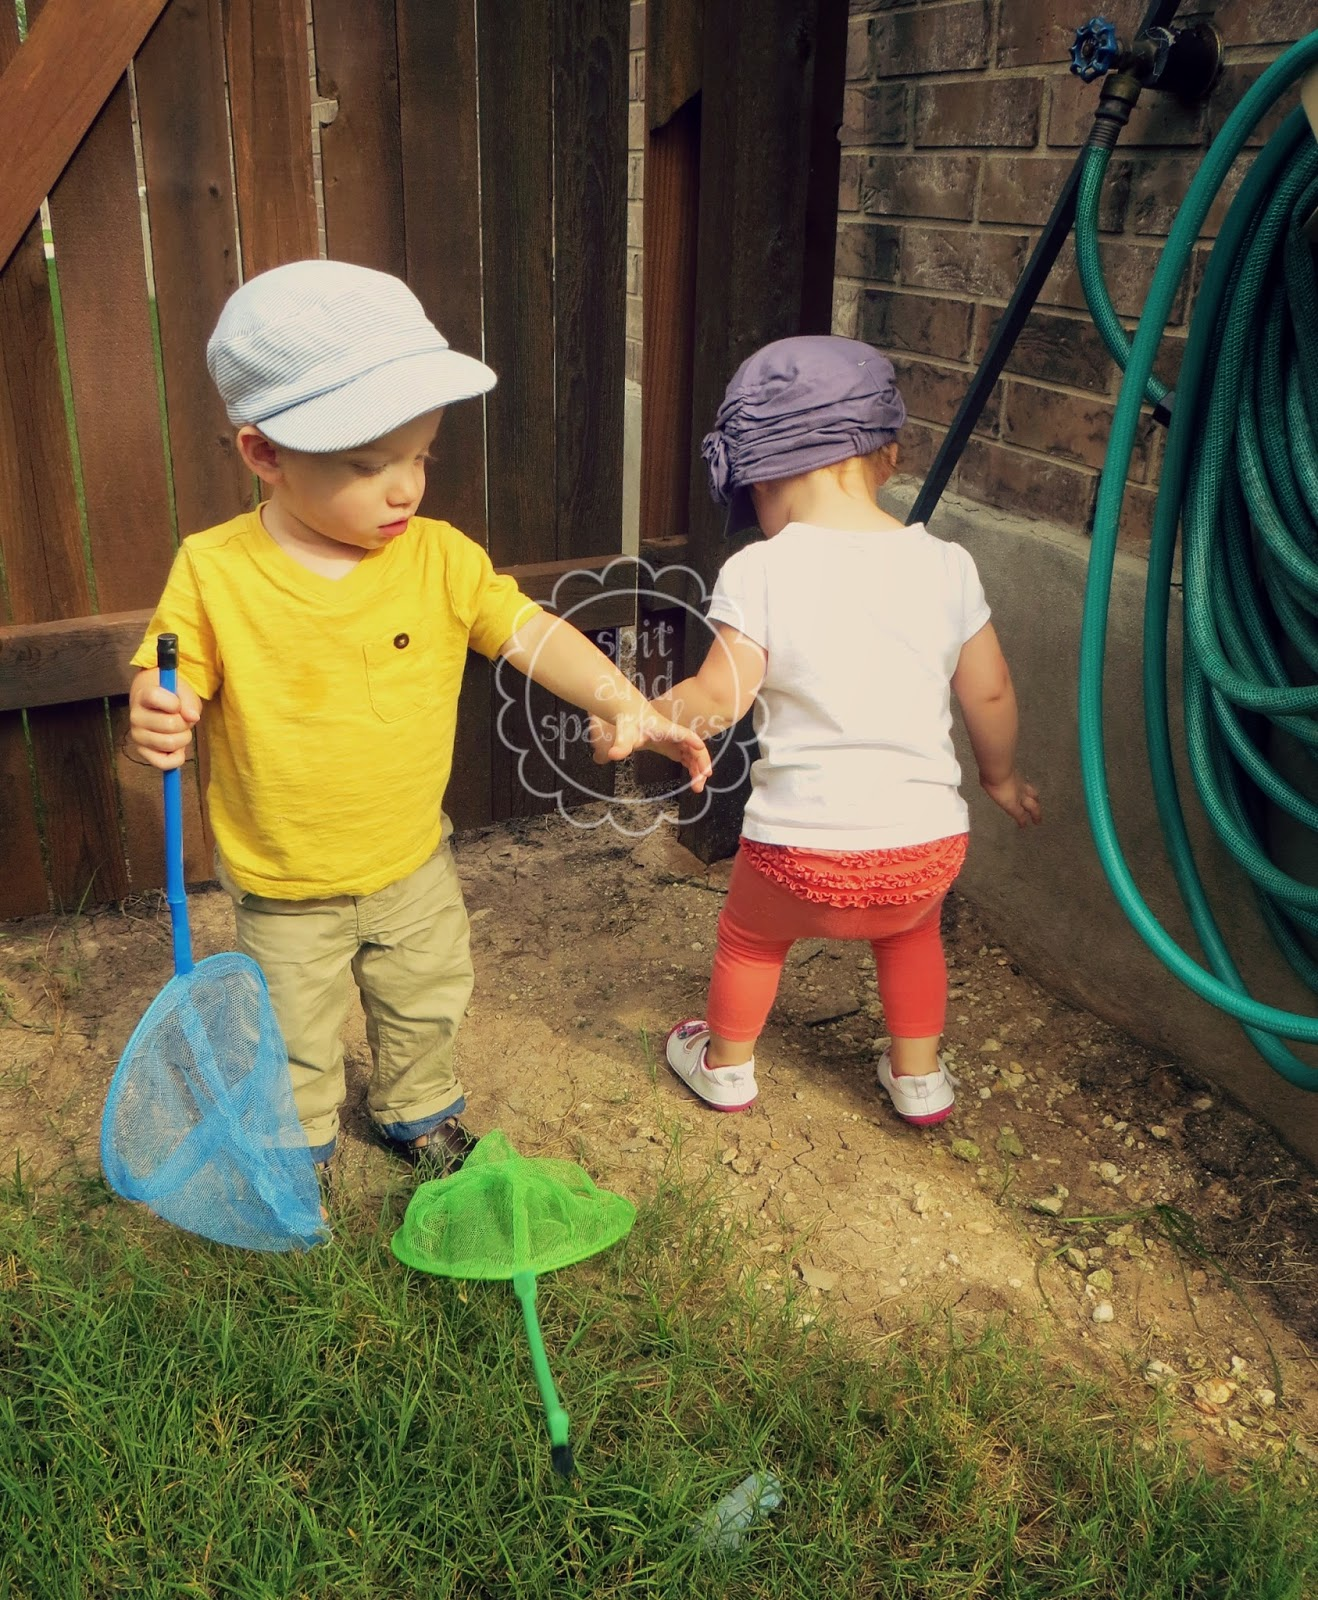 Tot School activities for science and outdoor learning. #totschool #outsidefun #toddlers #bugs